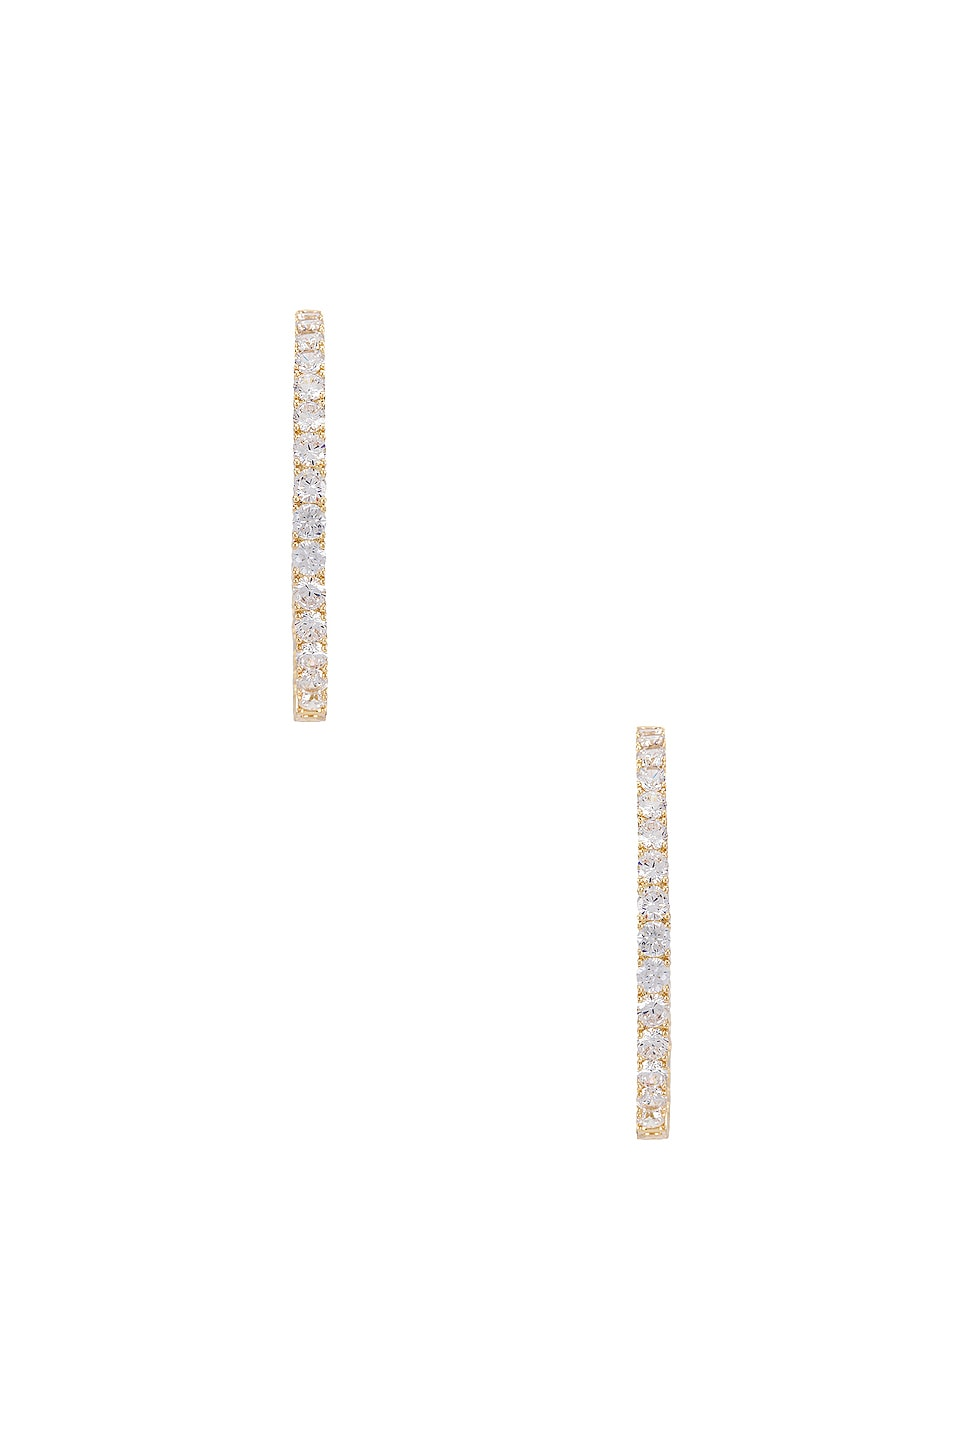 SHASHI Bella Pave Hoop Earring in Gold & Clear